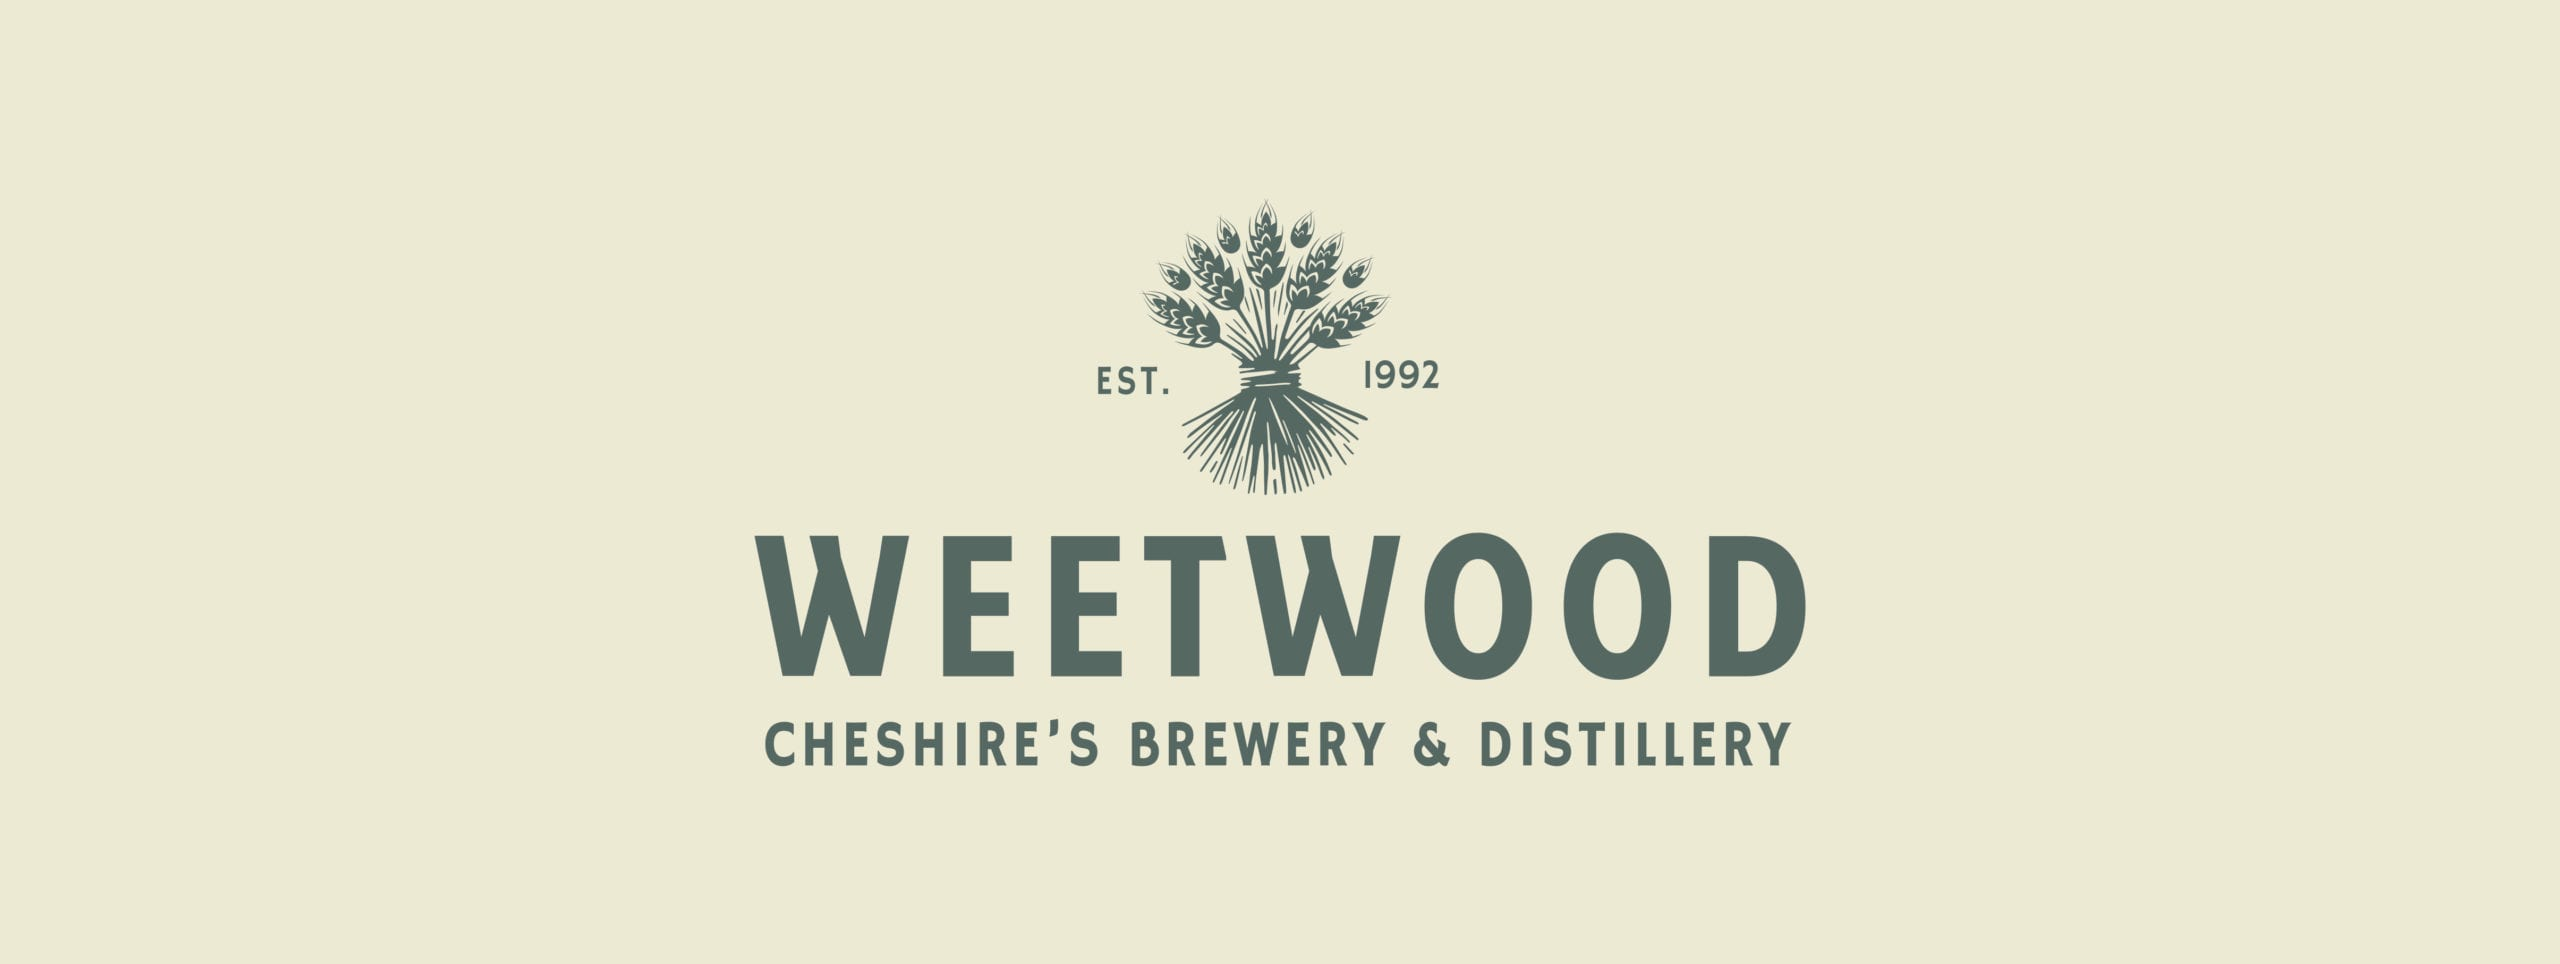 Weetwood brewery and distillery branding logo by Kingdom & Sparrow